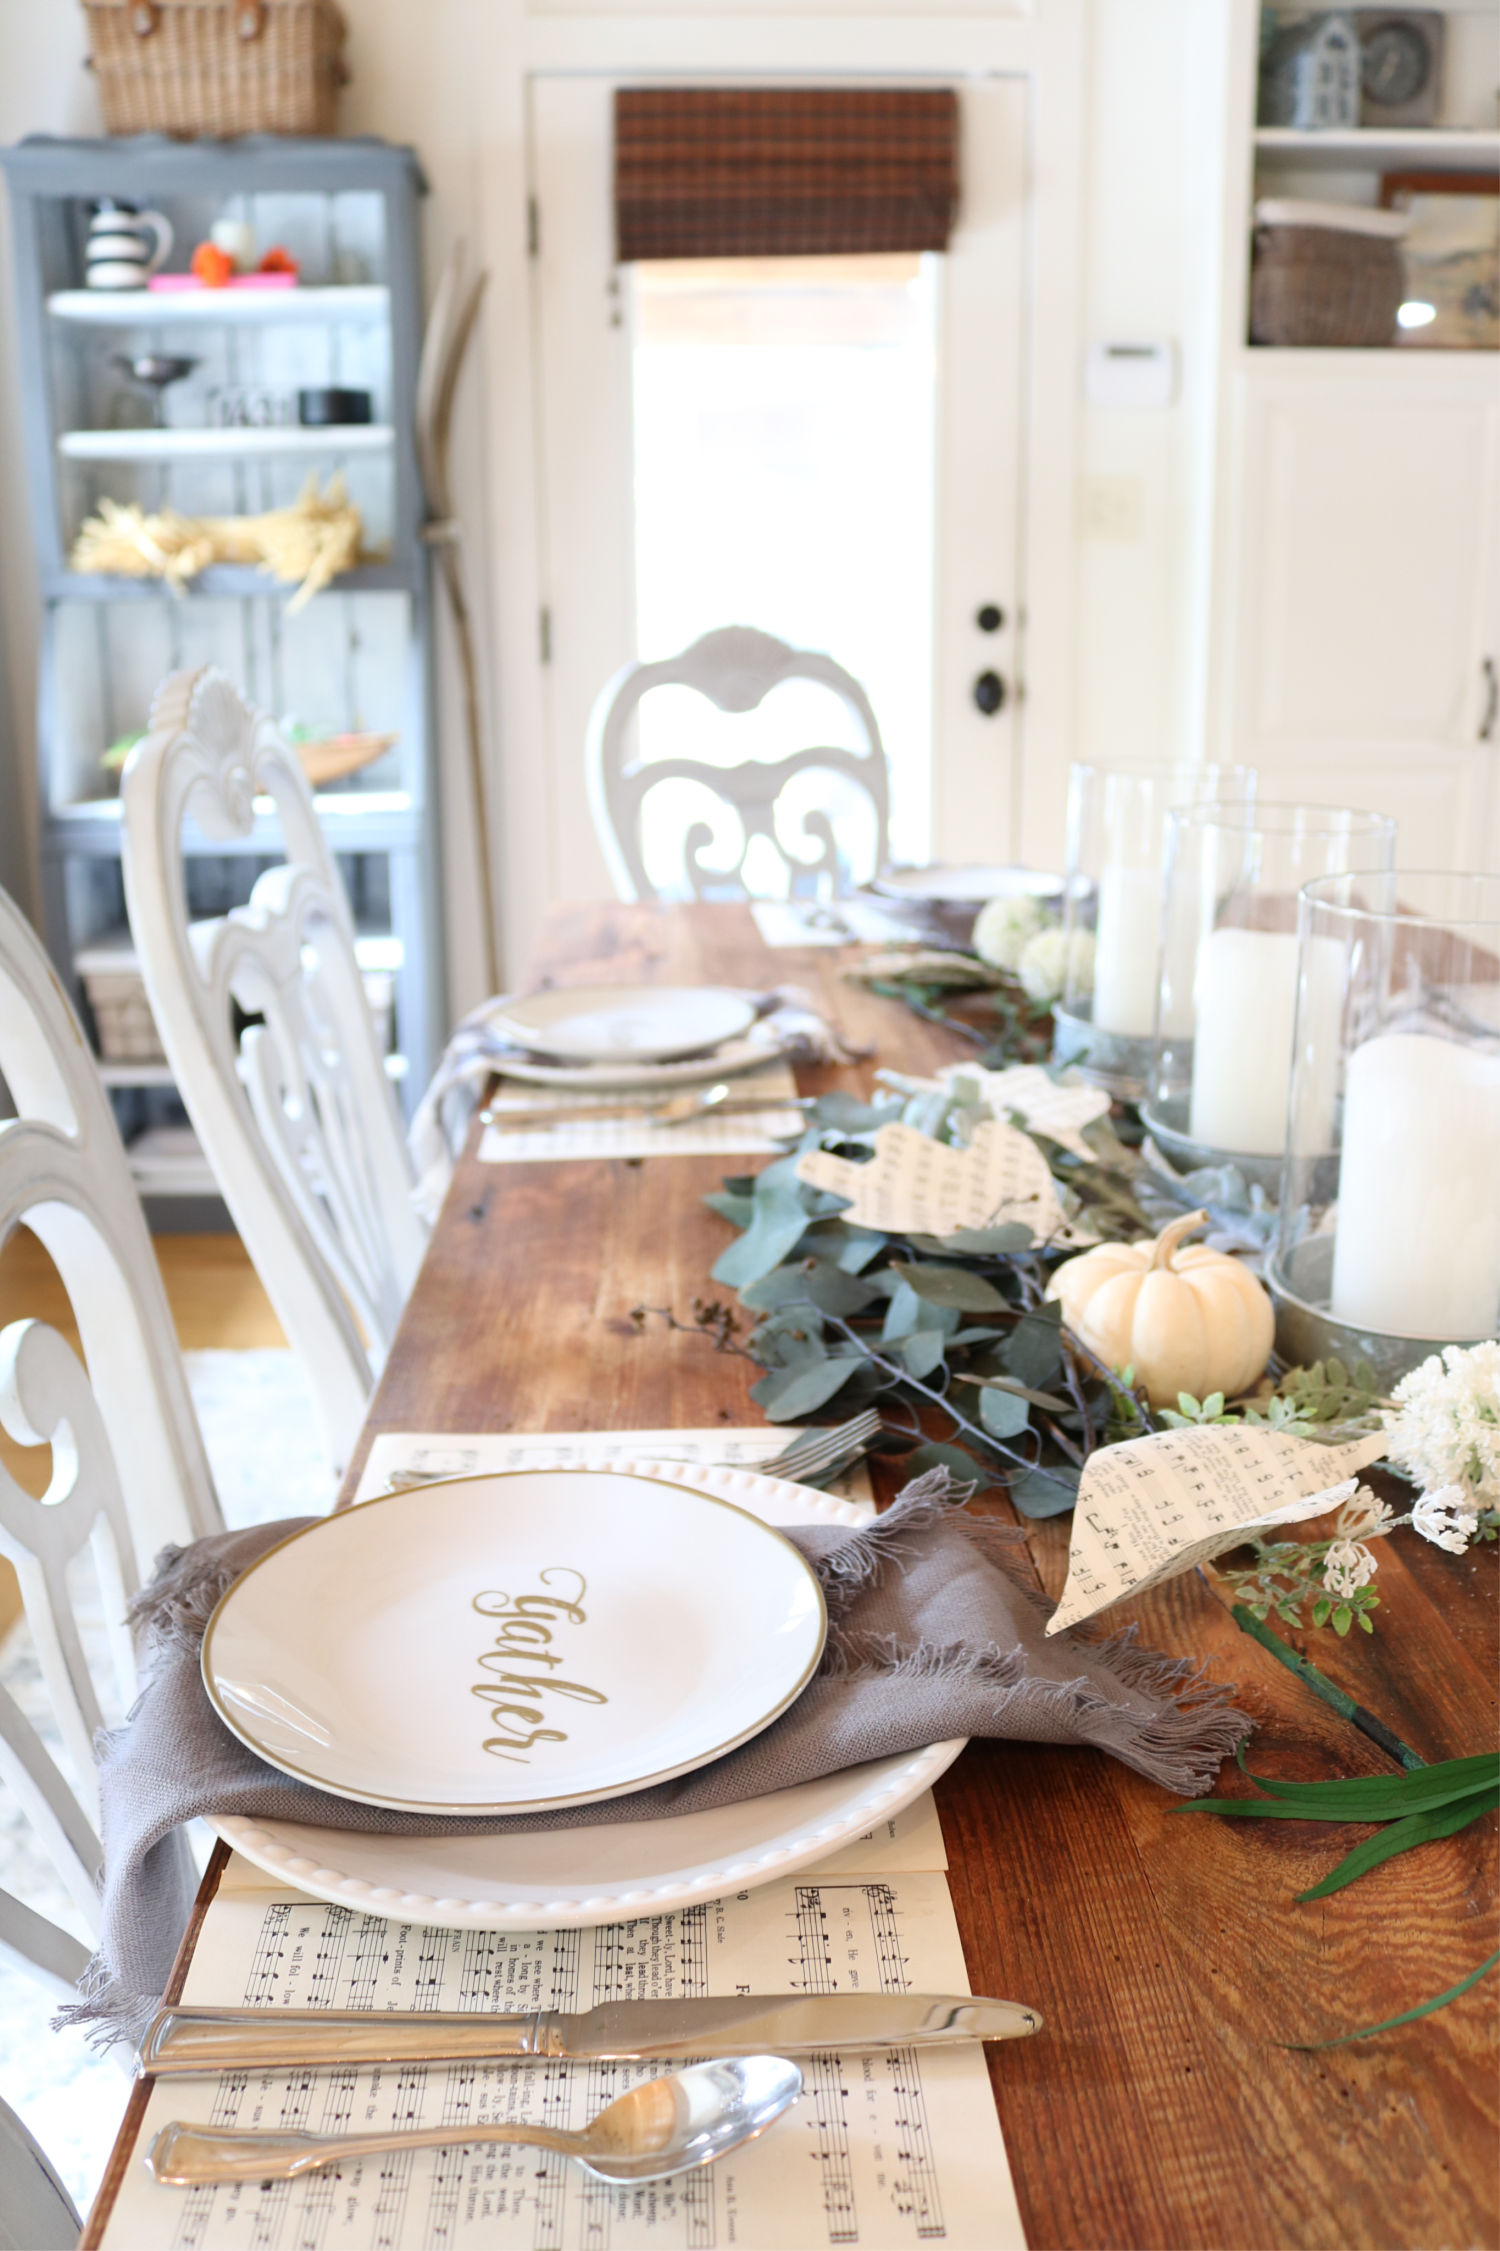 Farmhouse place setting - barn wood table